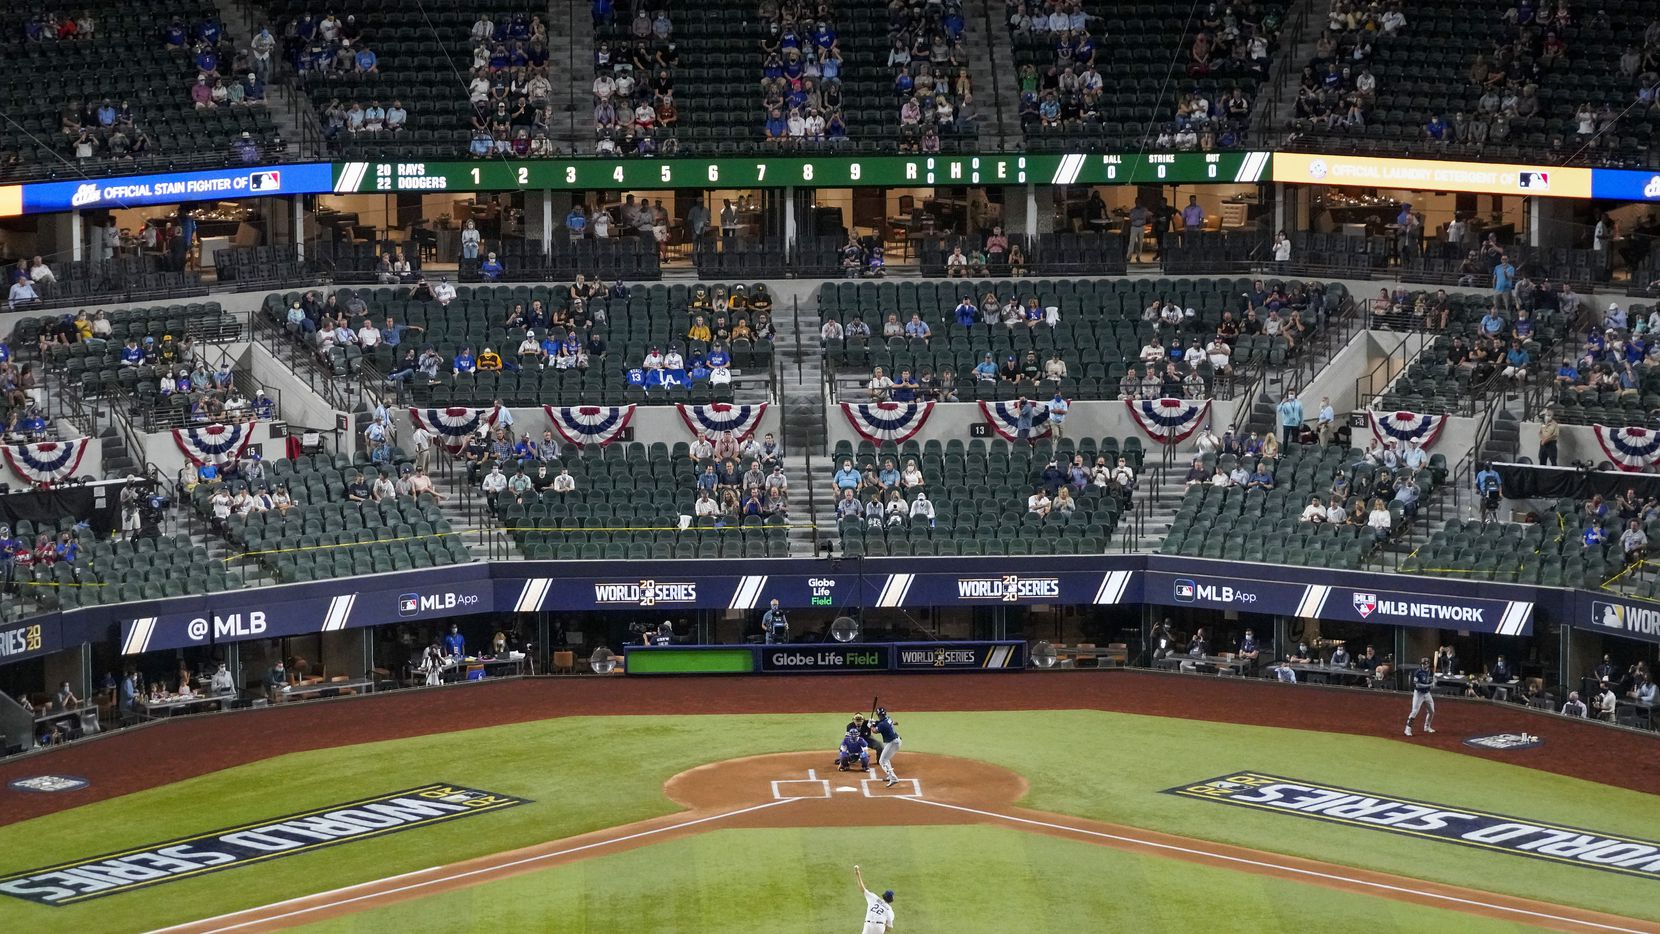 Los Angeles Dodgers starting pitcher Clayton Kershaw throws the first pitch of the game to Tampa Bay Rays first baseman Yandy Diaz during the first inning in Game 1 of the World Series at Globe Life Field on Oct. 20, 2020.